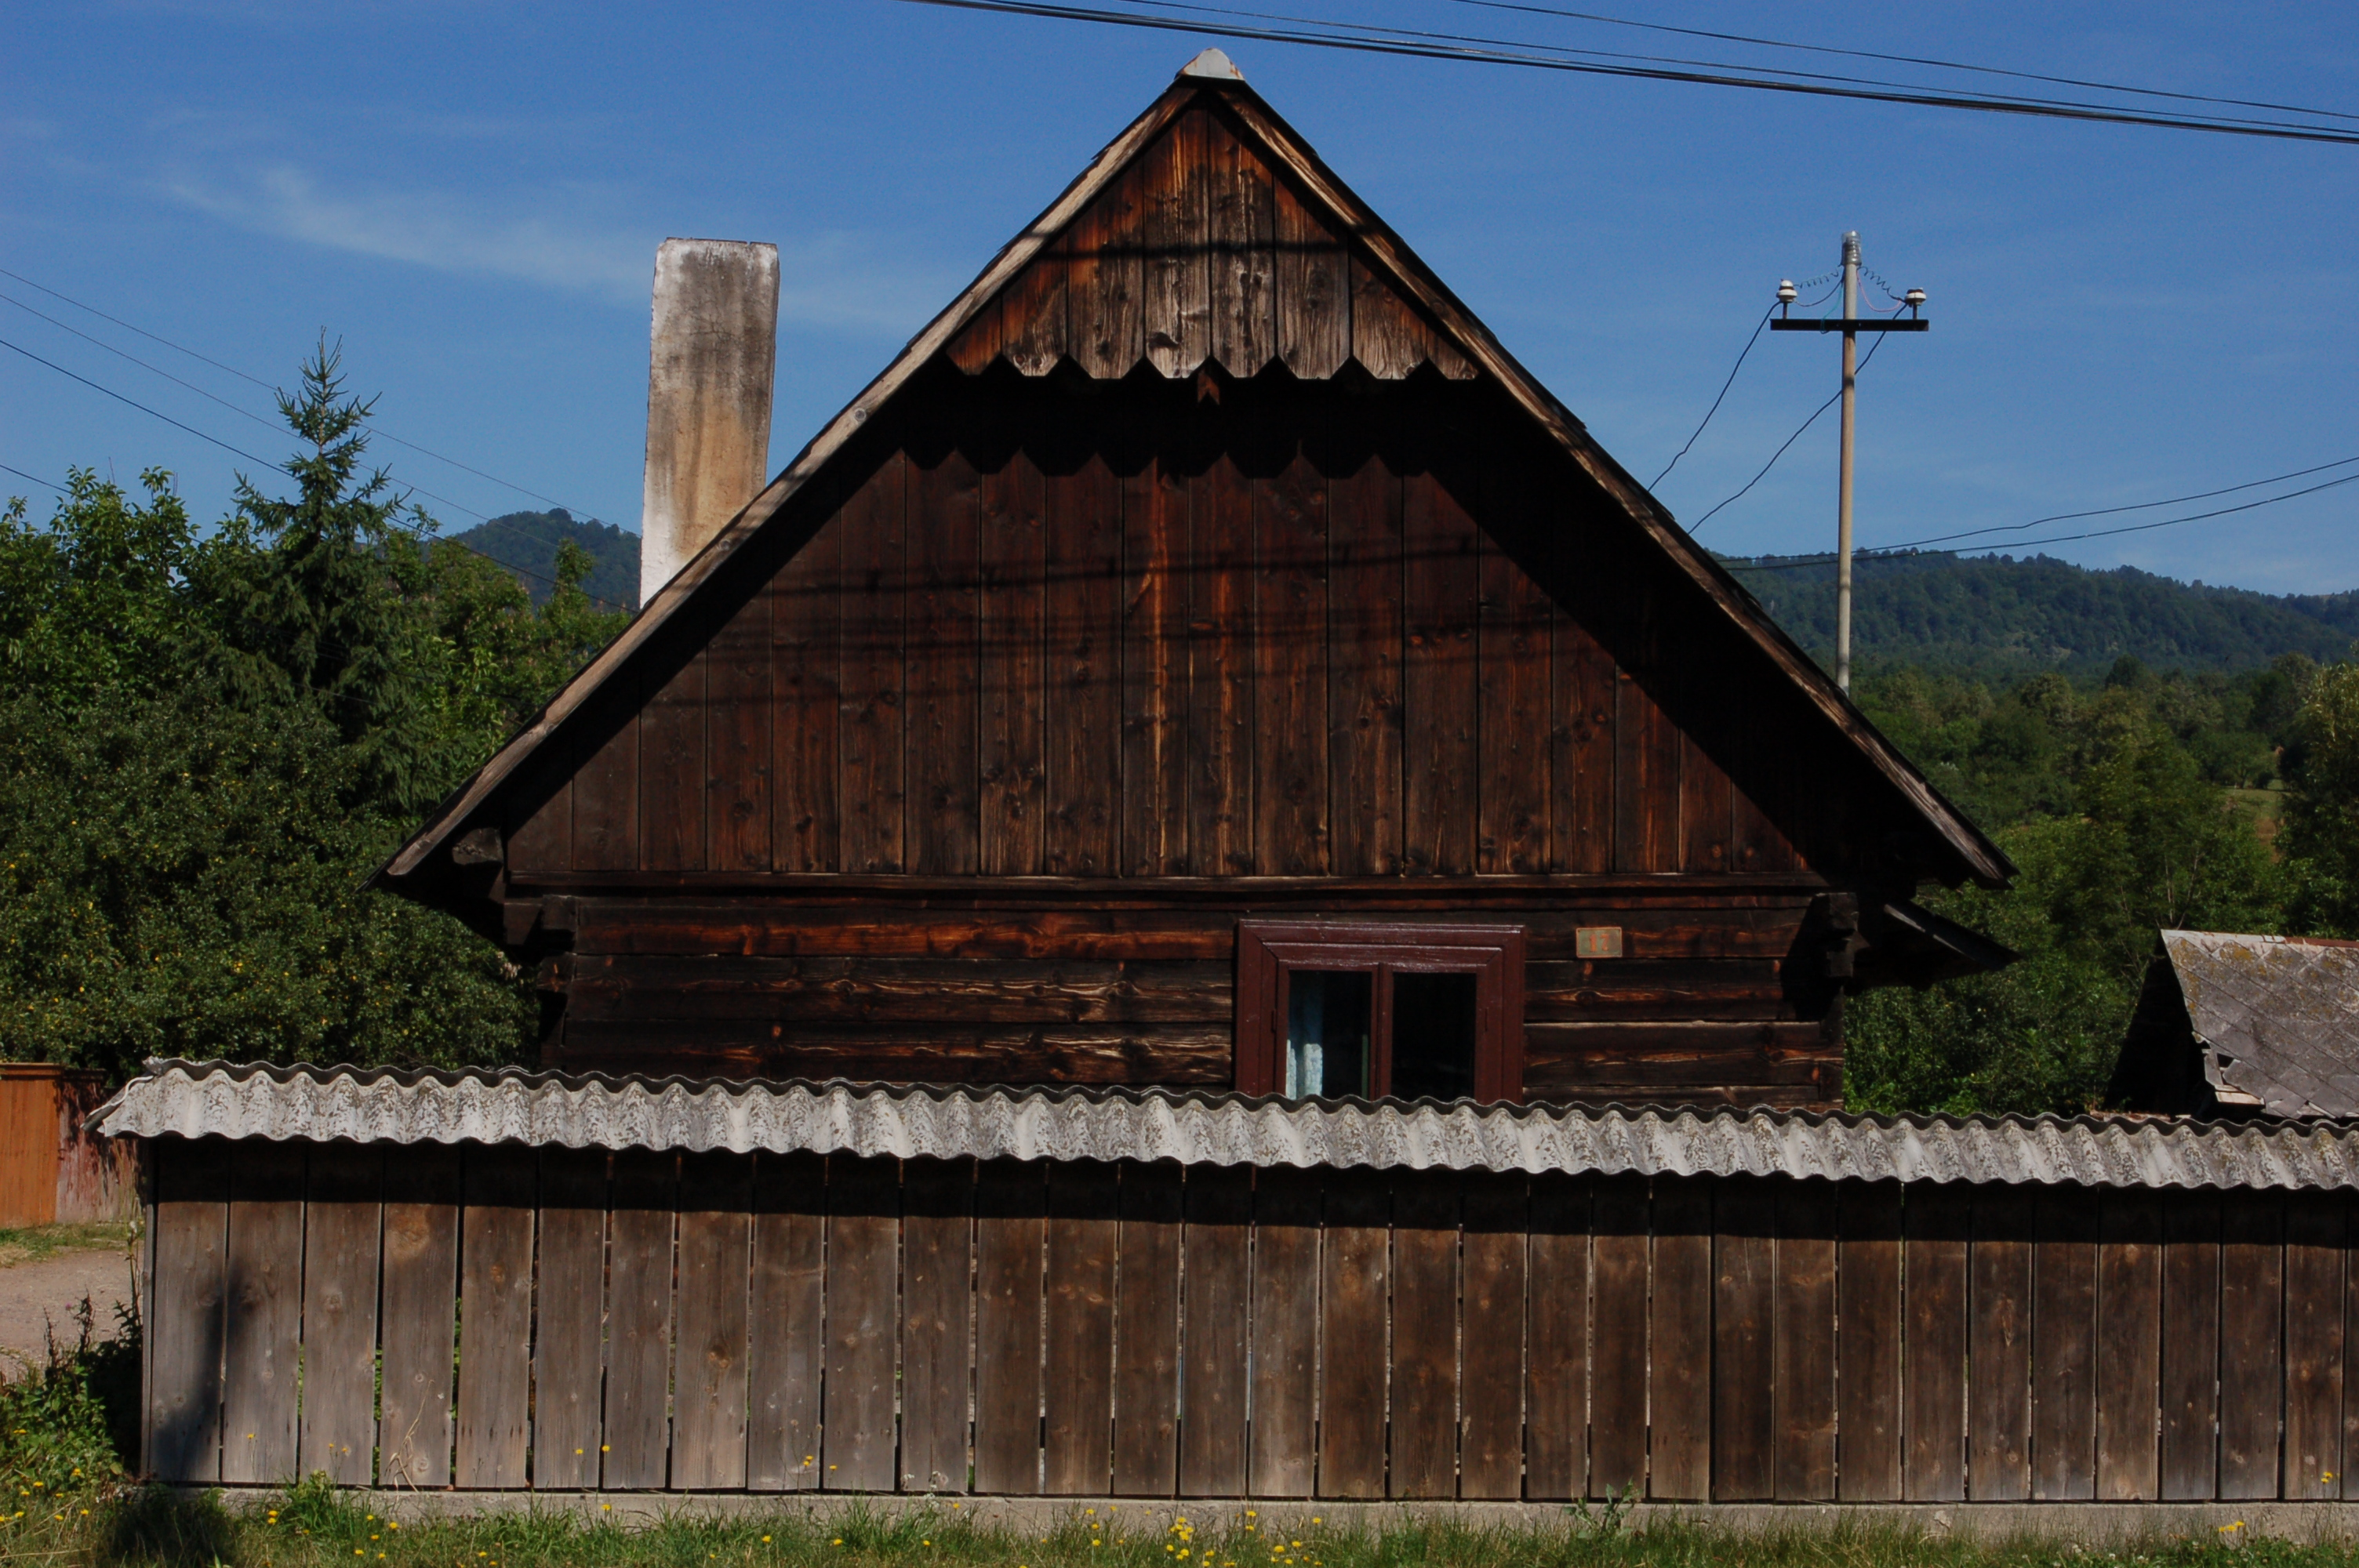 1000 images about maramures architecture on pinterest romania close image and arrow keys - Houses maramures wood ...